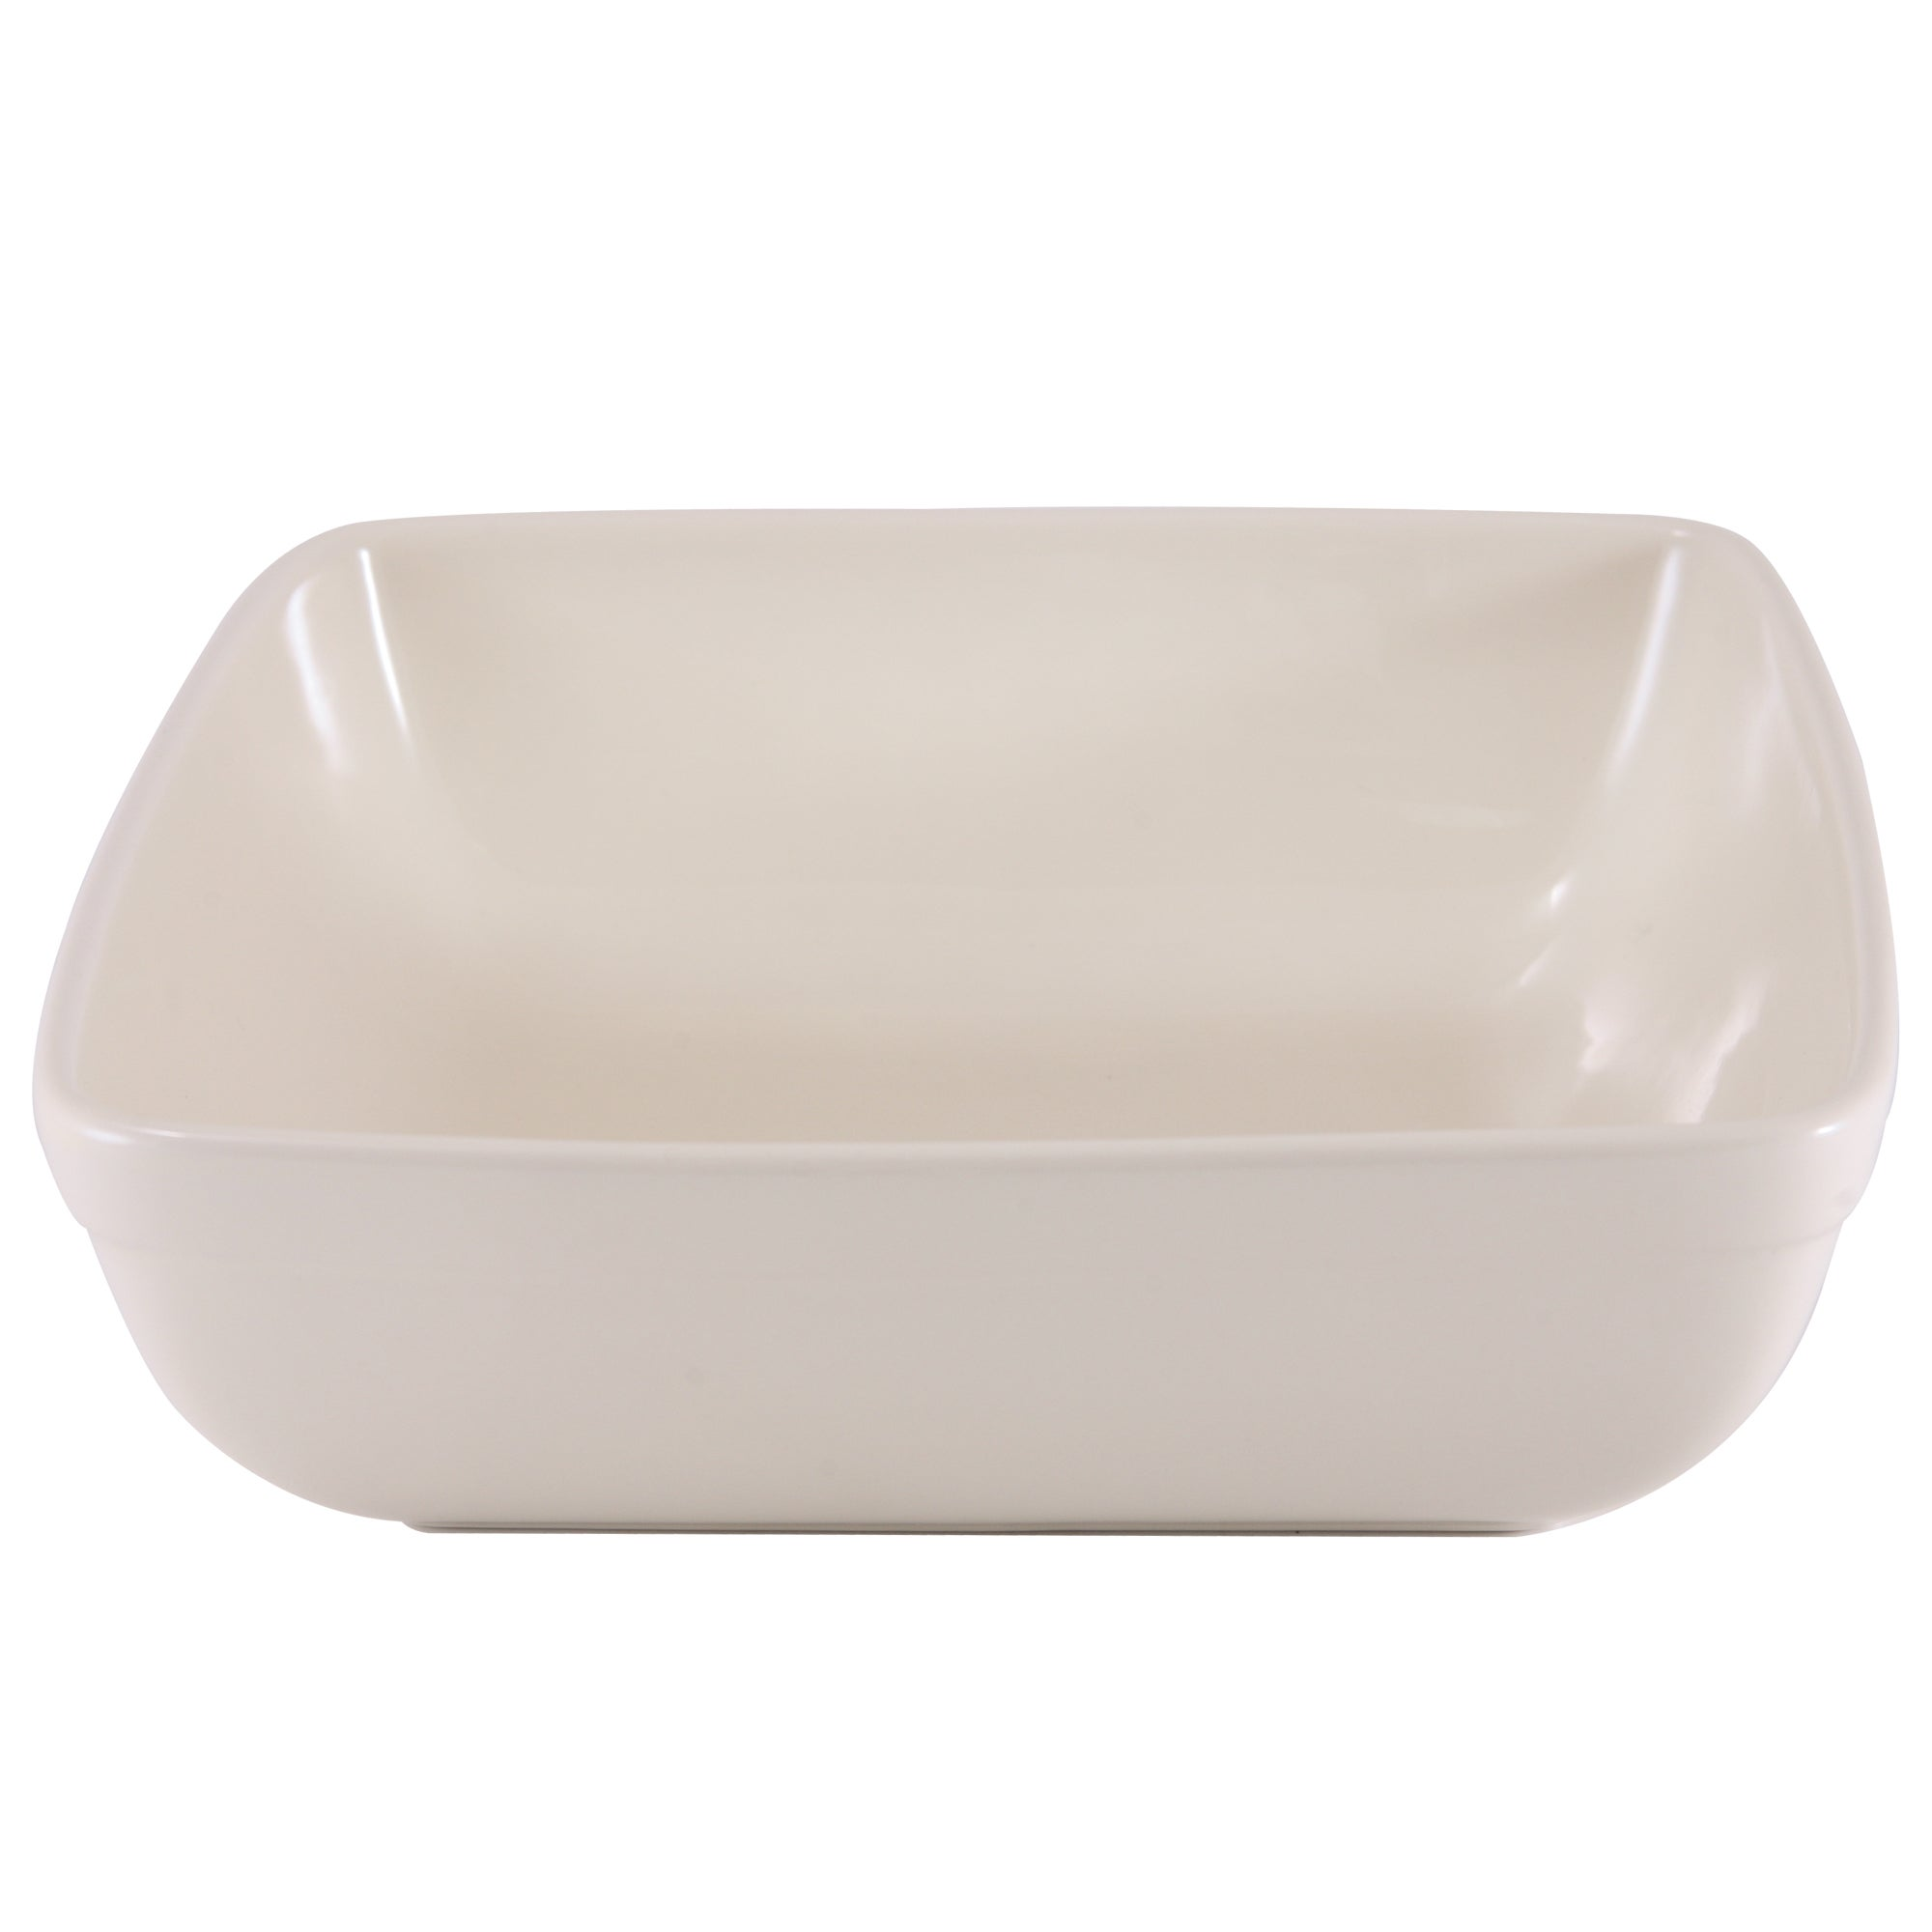 Cream Farmhouse Collection Square Dish